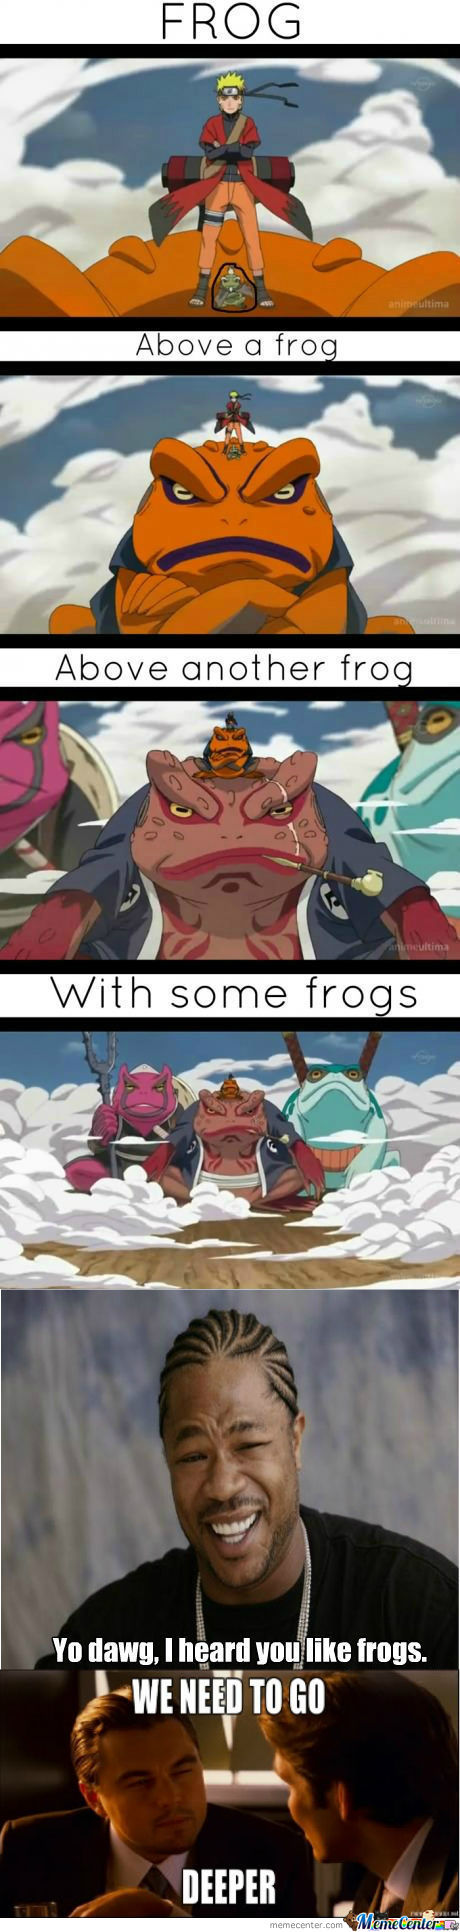 [RMX] Frogception